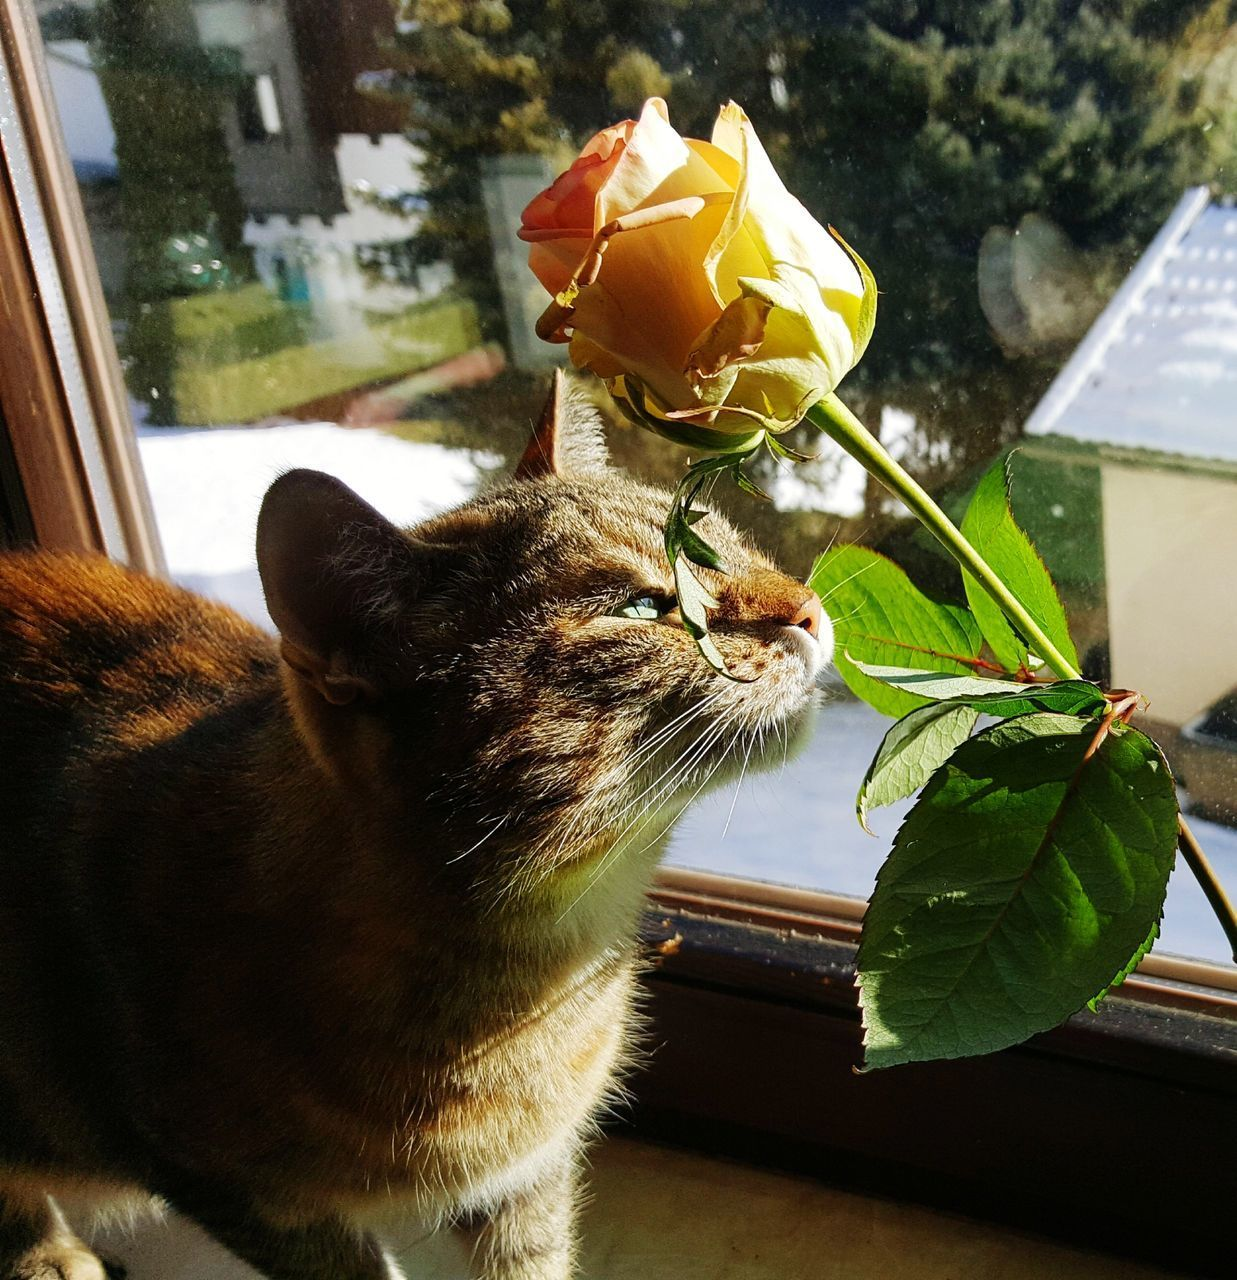 CLOSE-UP OF CAT SITTING ON PLANT IN ROOM